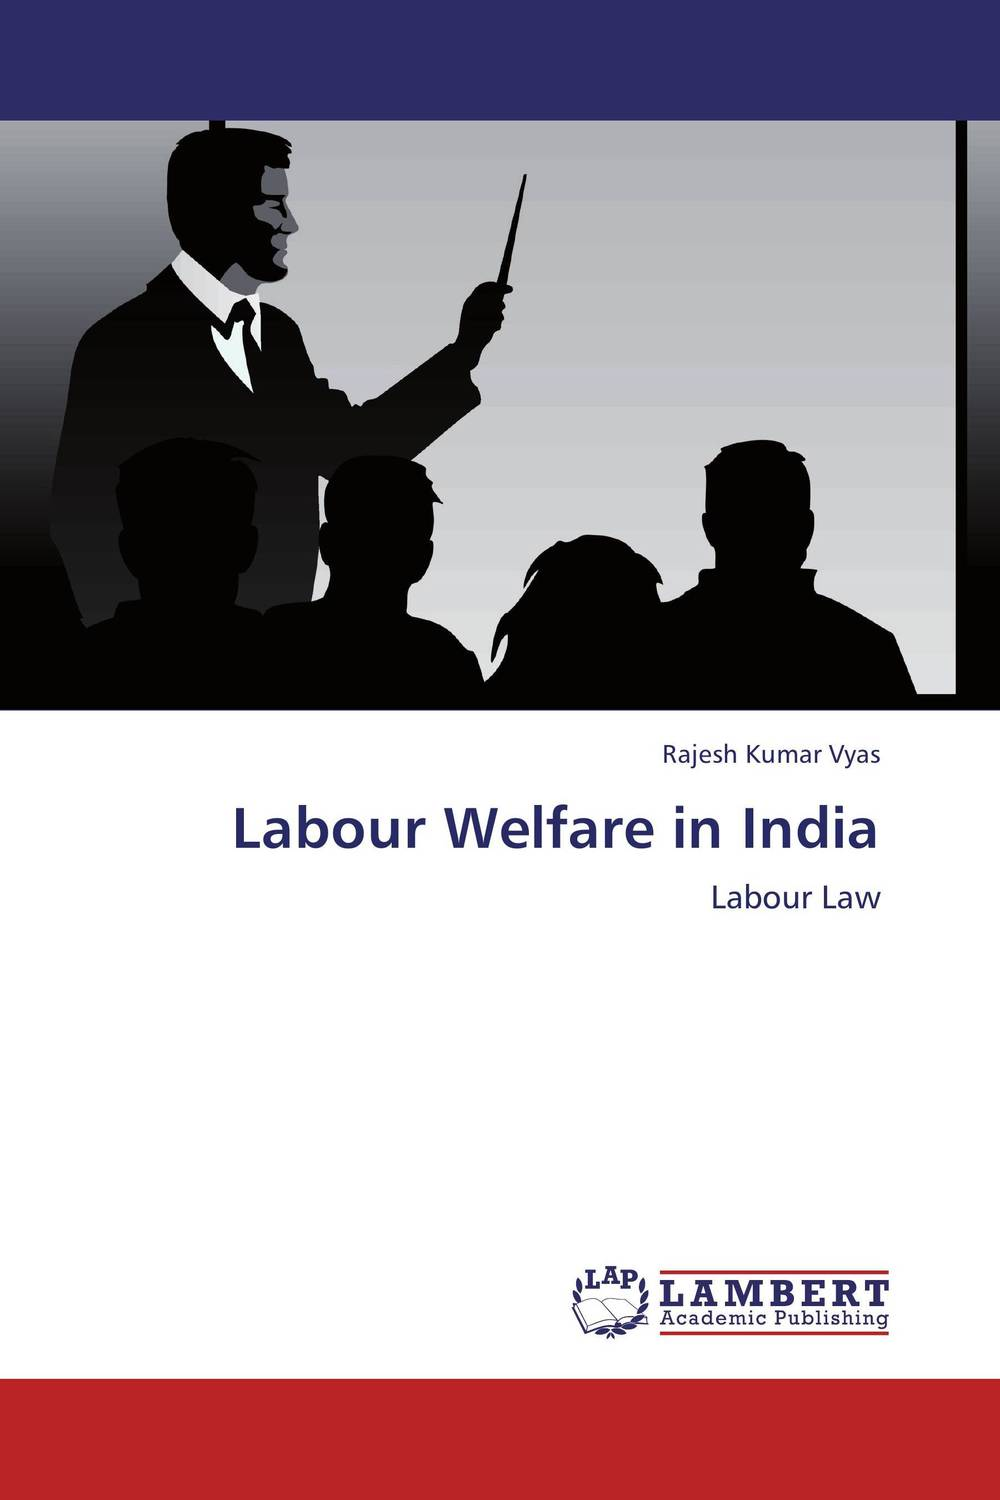 Labour Welfare in India stories of care a labour of law